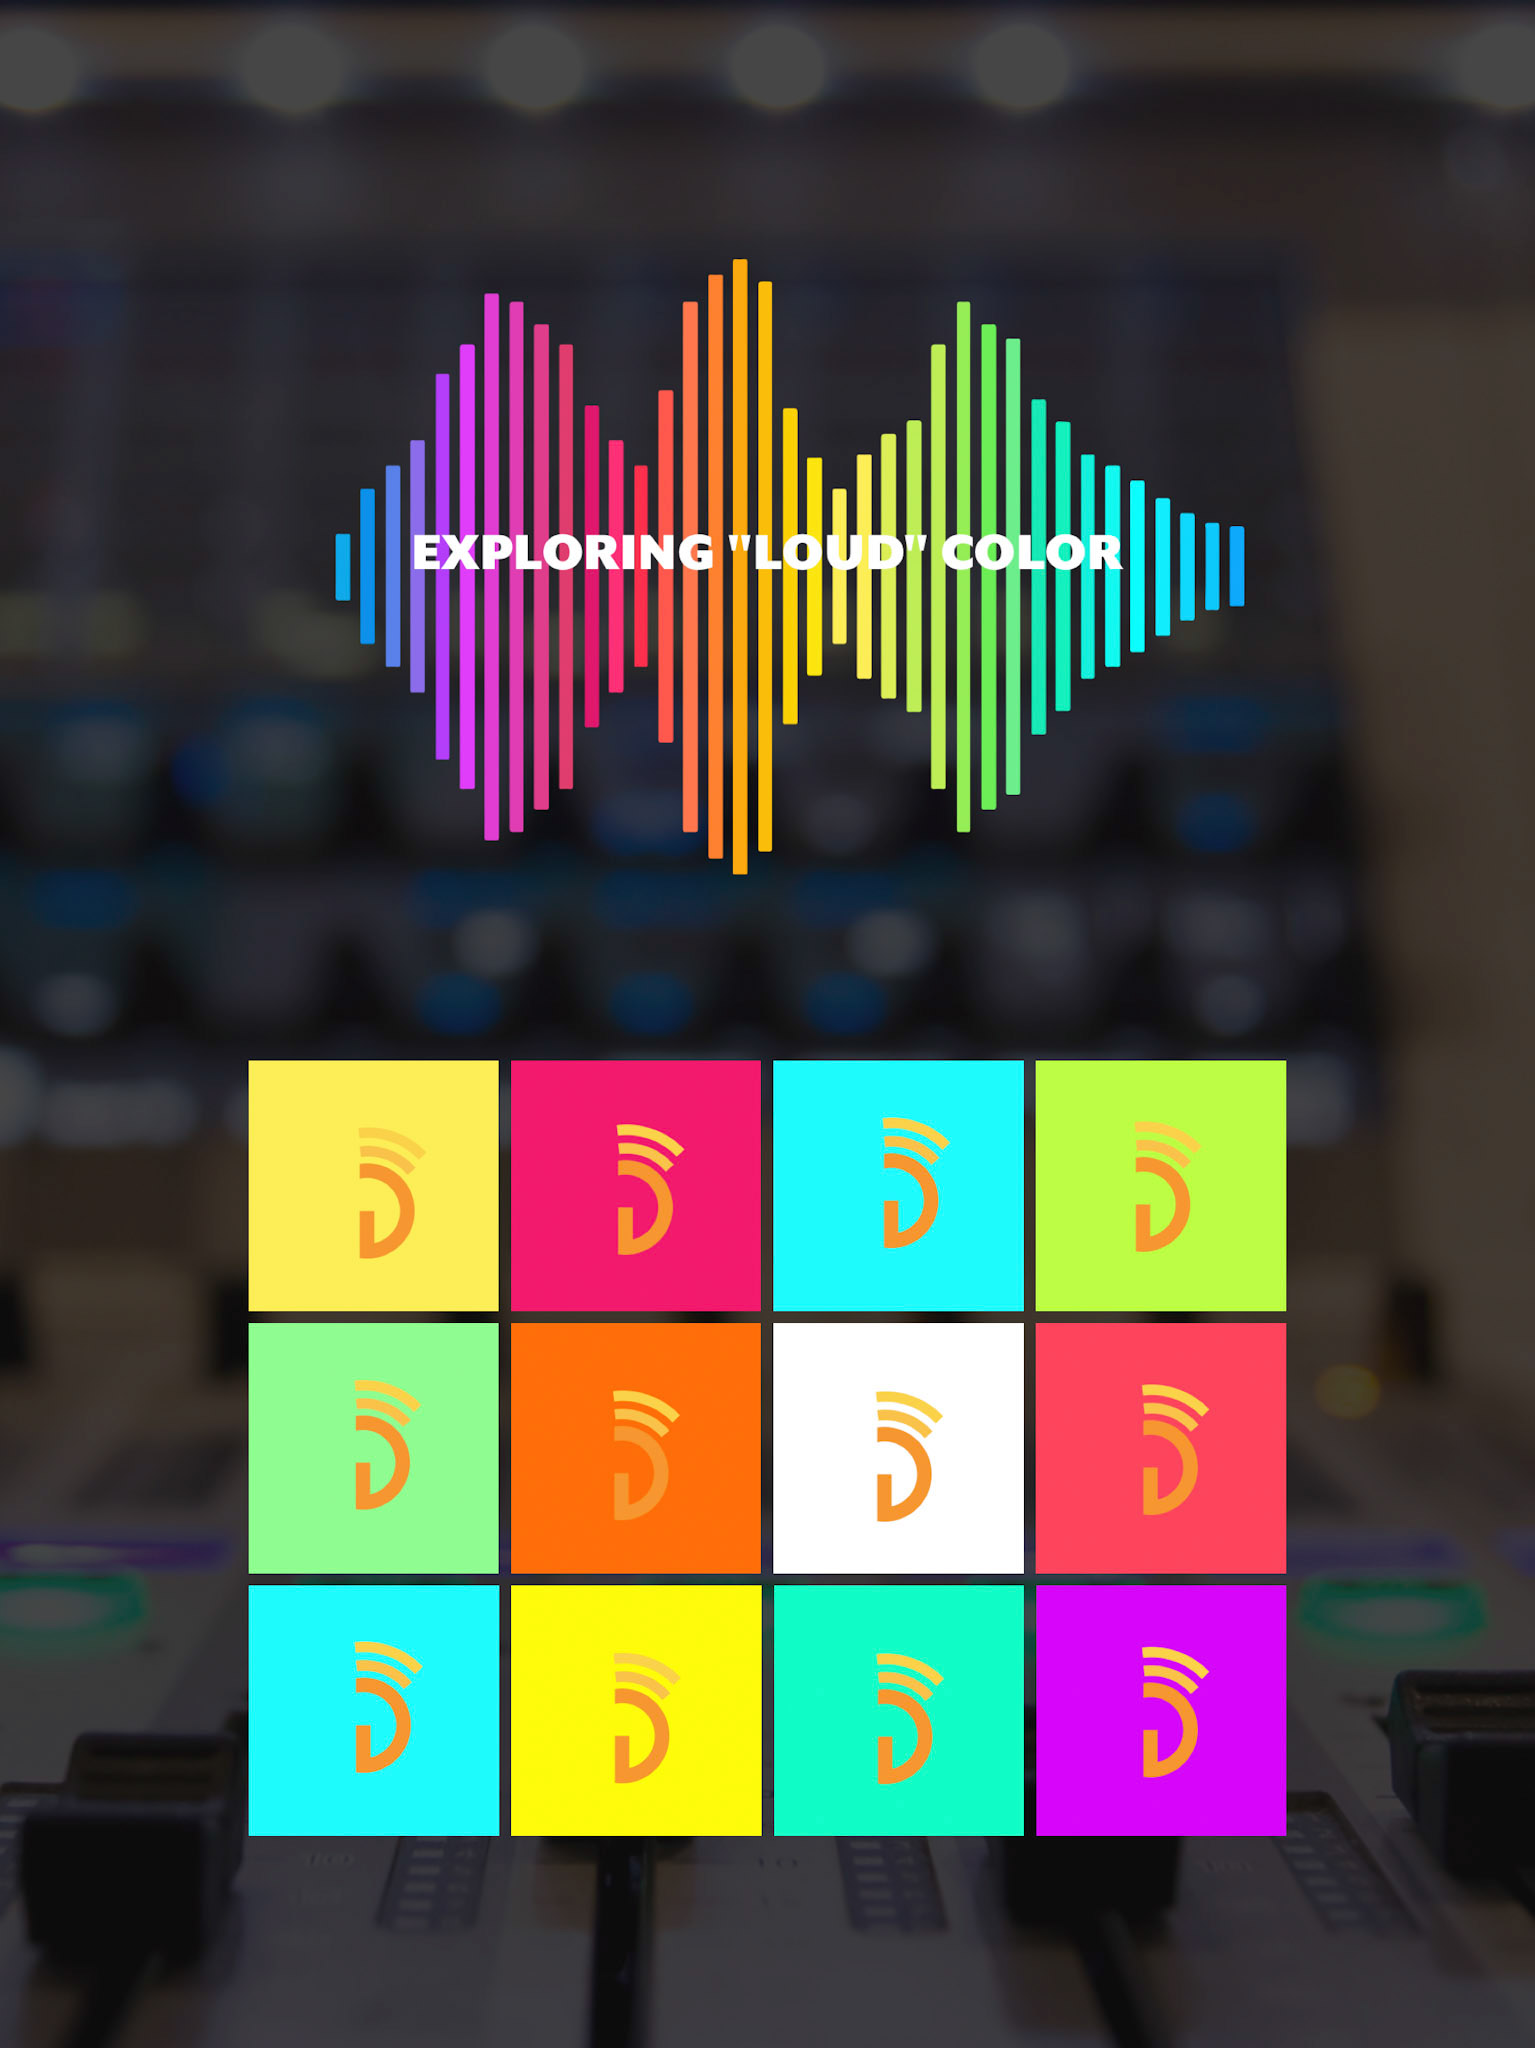 """- This image shows the color exploration. It has the spectrum of loud colors chose, laid out in sound waves, with text overlaying - ExPLORING """"LOUD"""" COLOR. Further down, is a grid of colors. Each tile has a different background color as the logo laid on each. This shows the color relation between the predominantly orange logo & """"loud"""" color."""